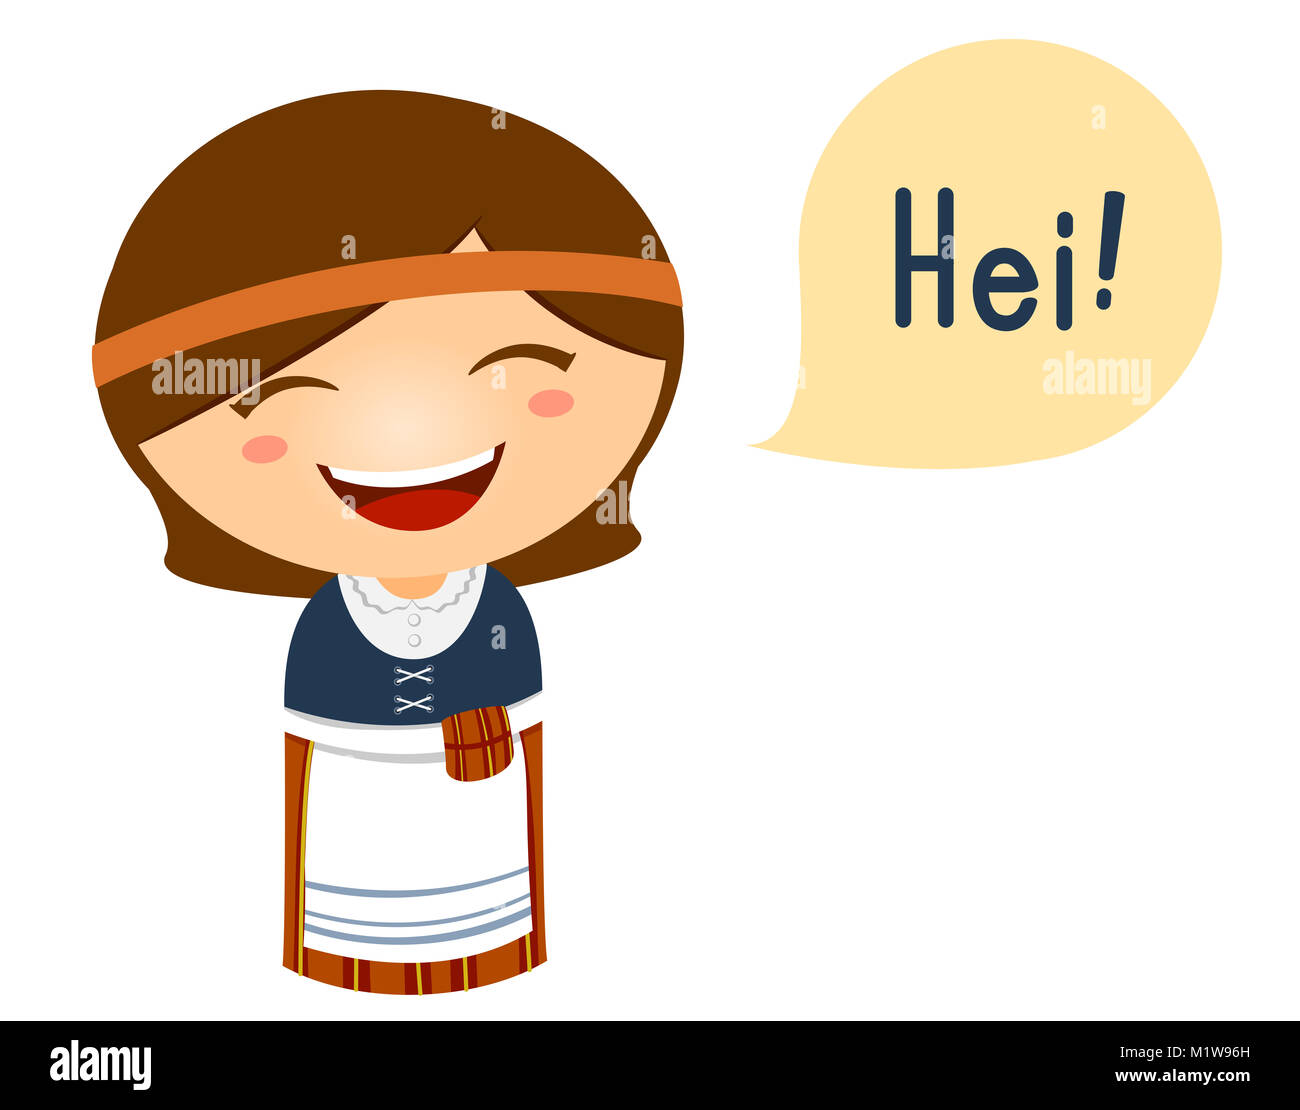 cute illustration of a little girl in a finnish costume saying hello